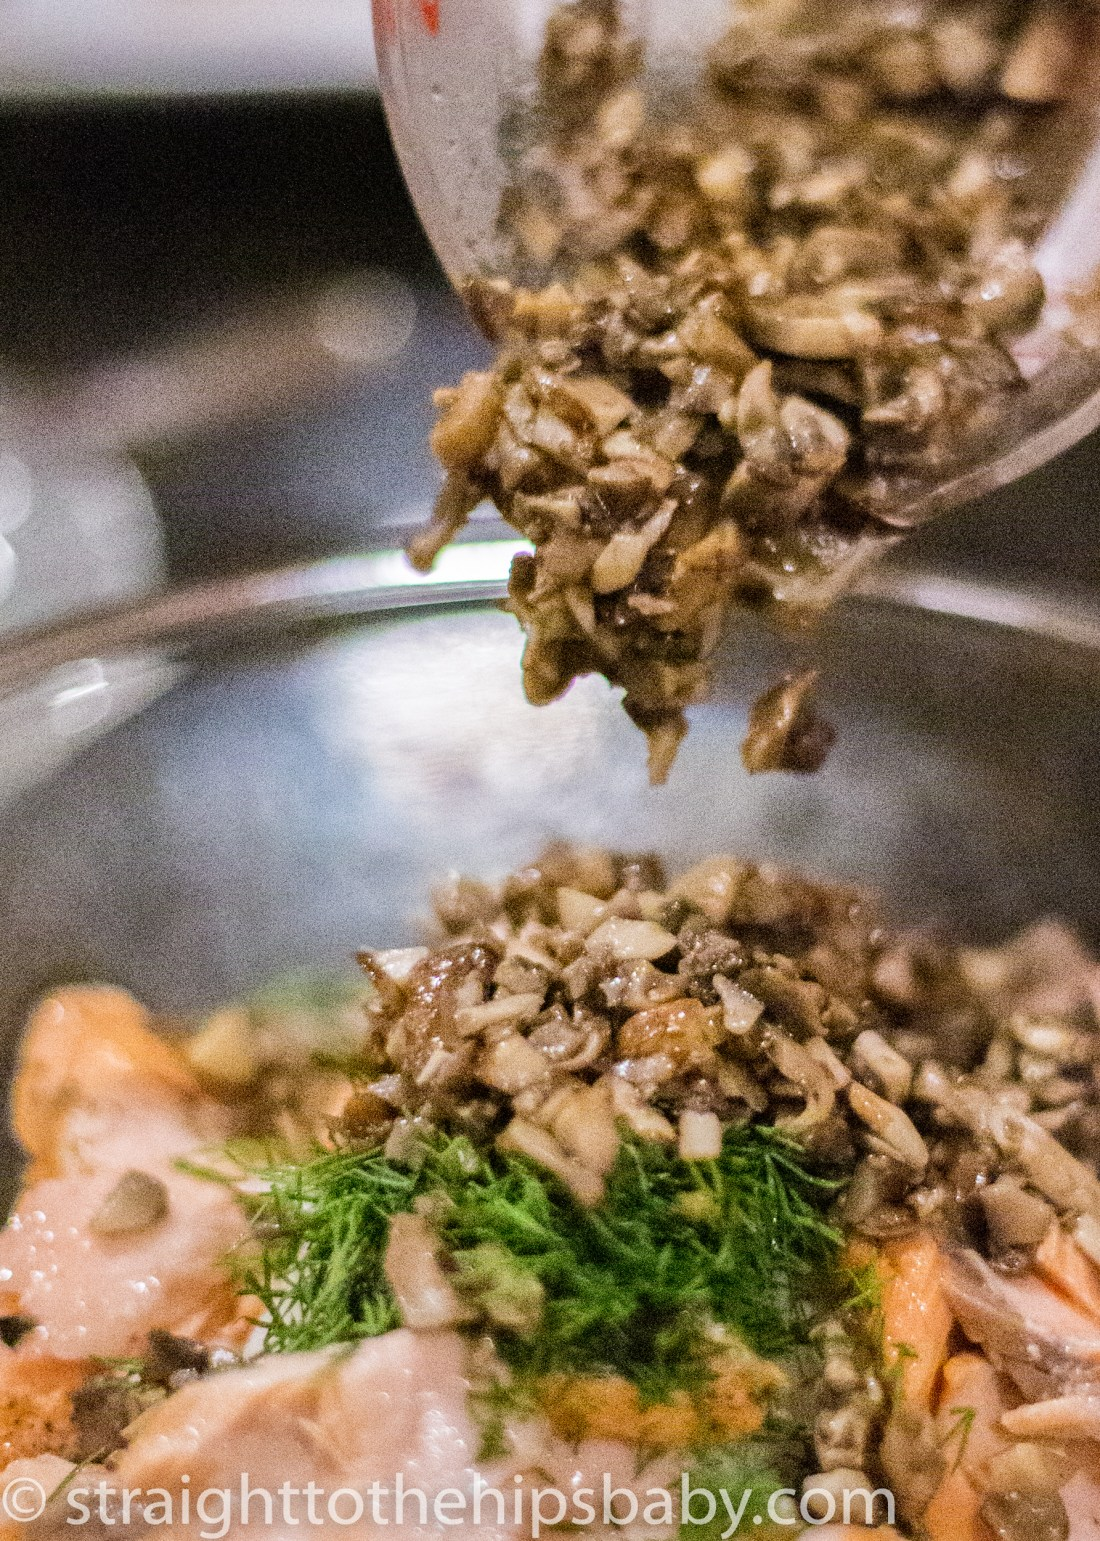 adding the mushrooms and dill to the salmon and rice mixture